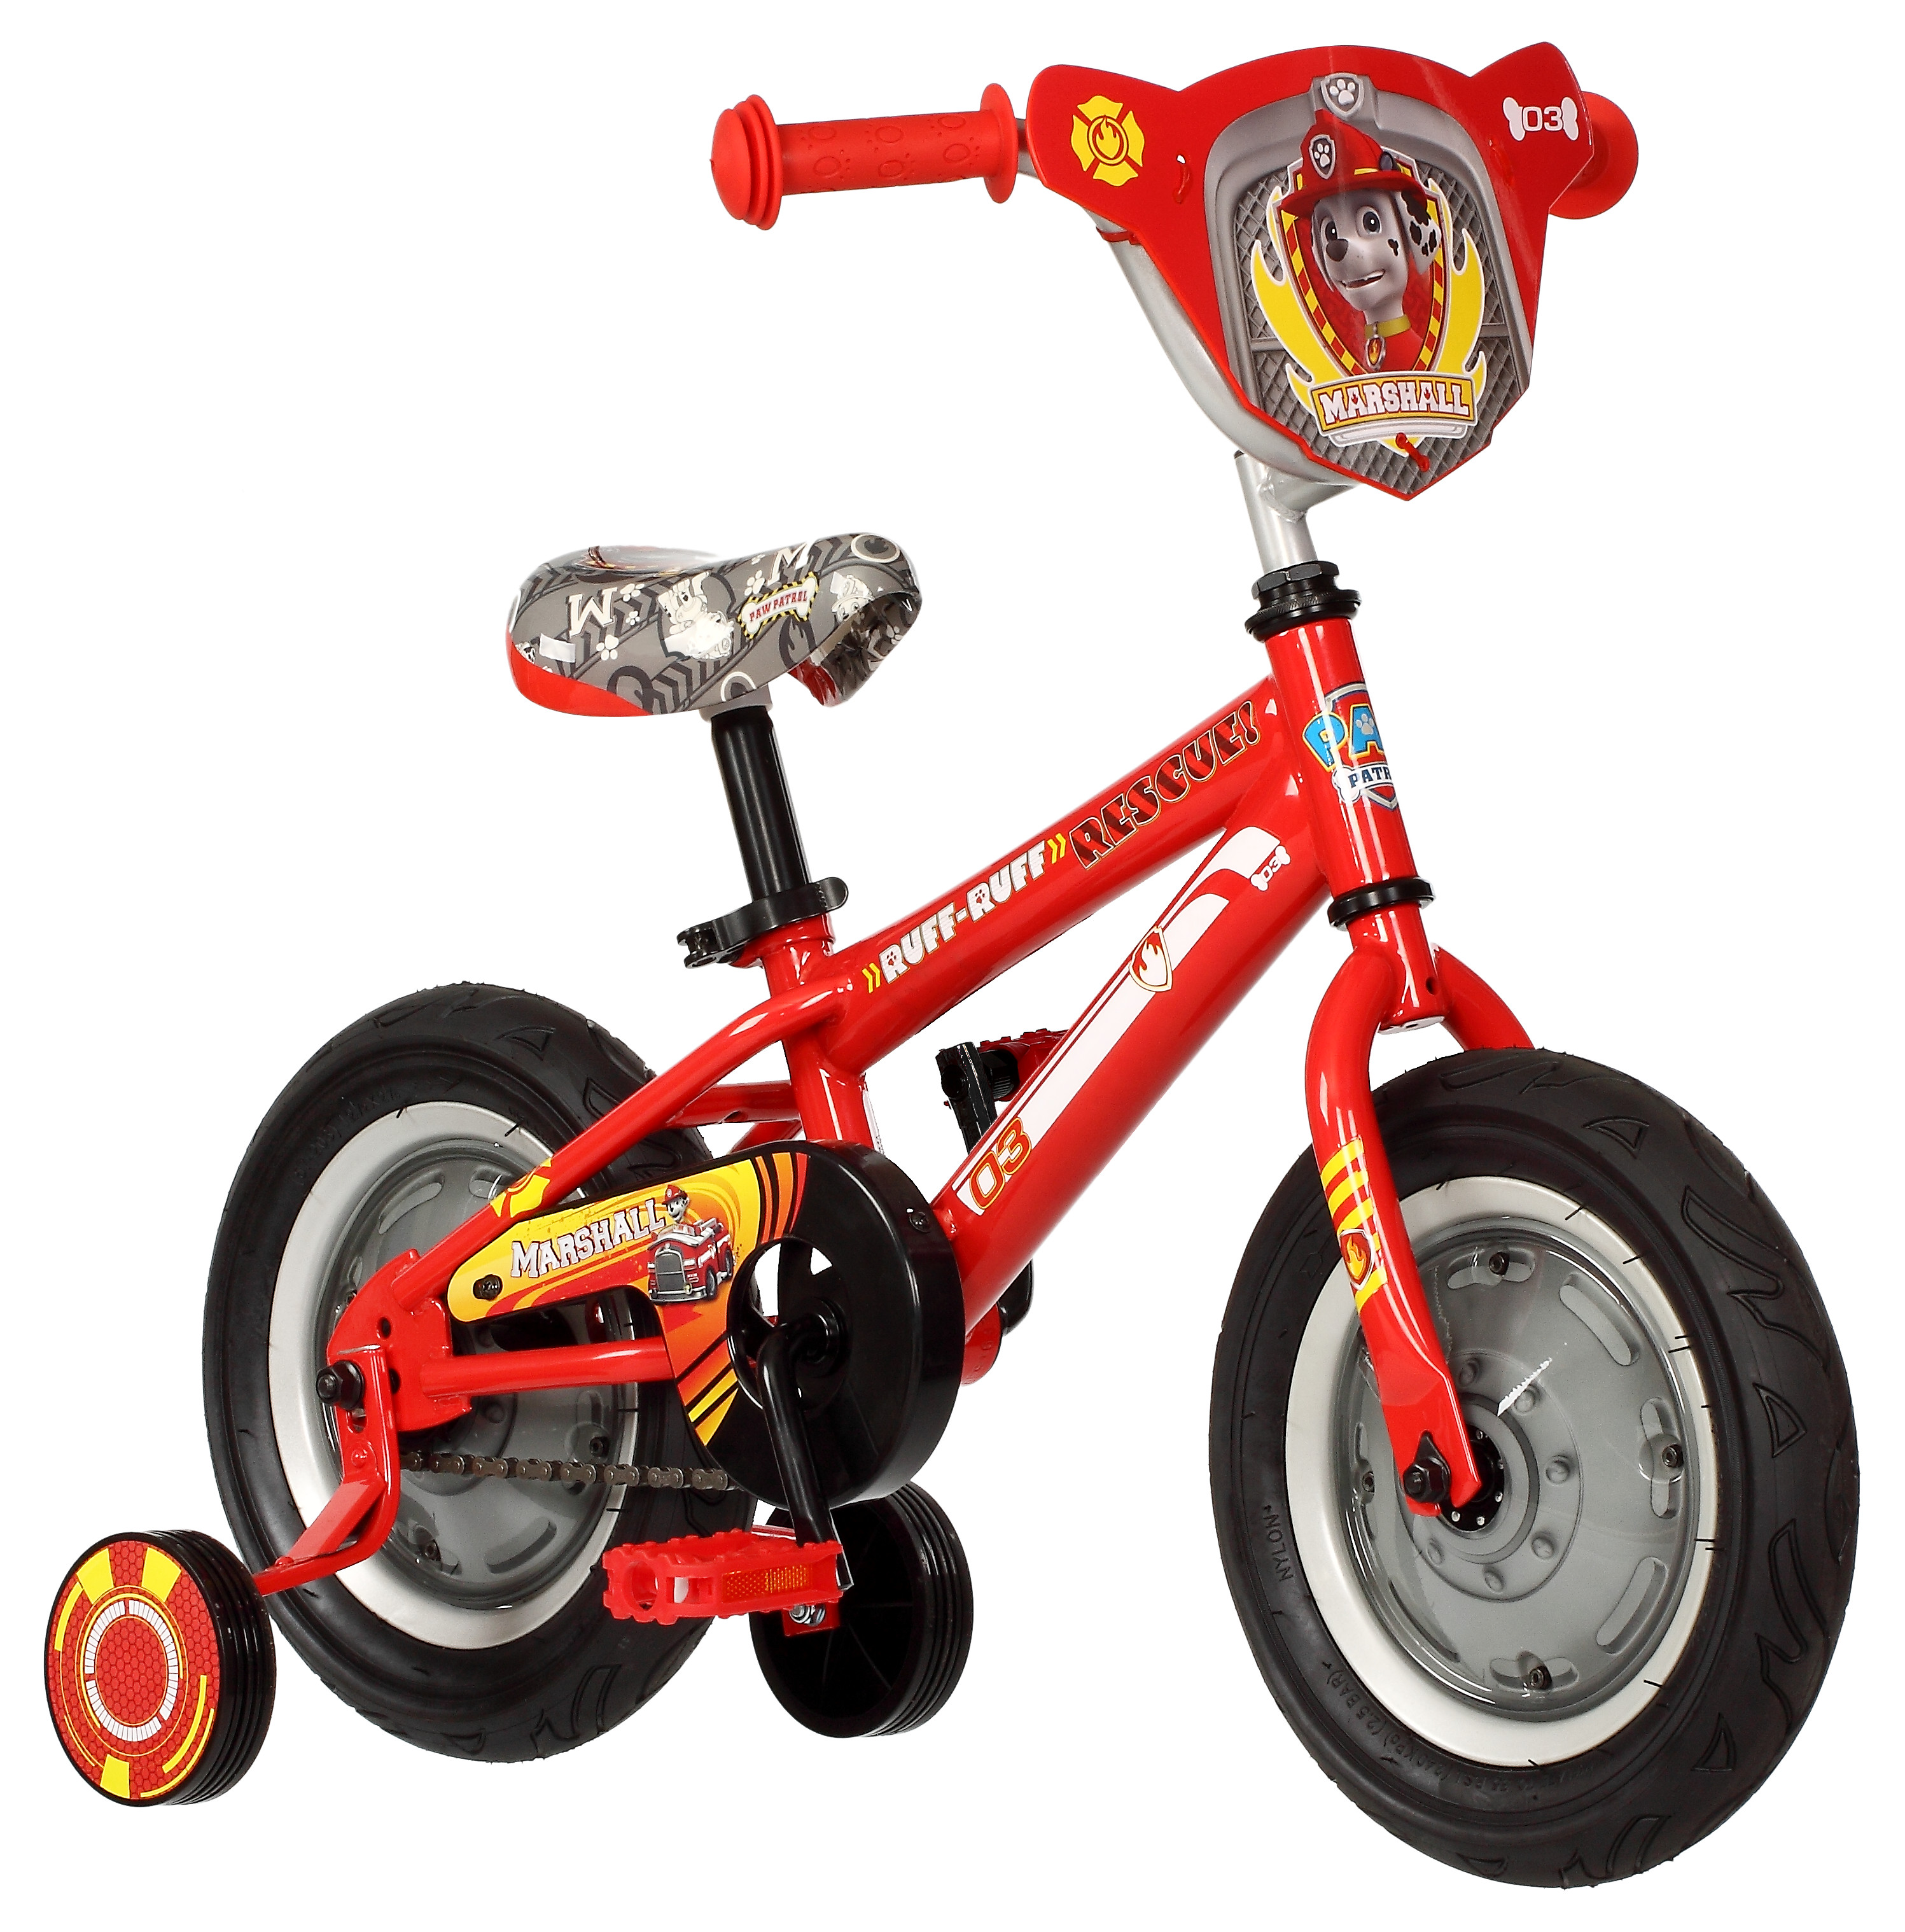 "12"" Paw Patrol Bike Featuring Marshall, Red"